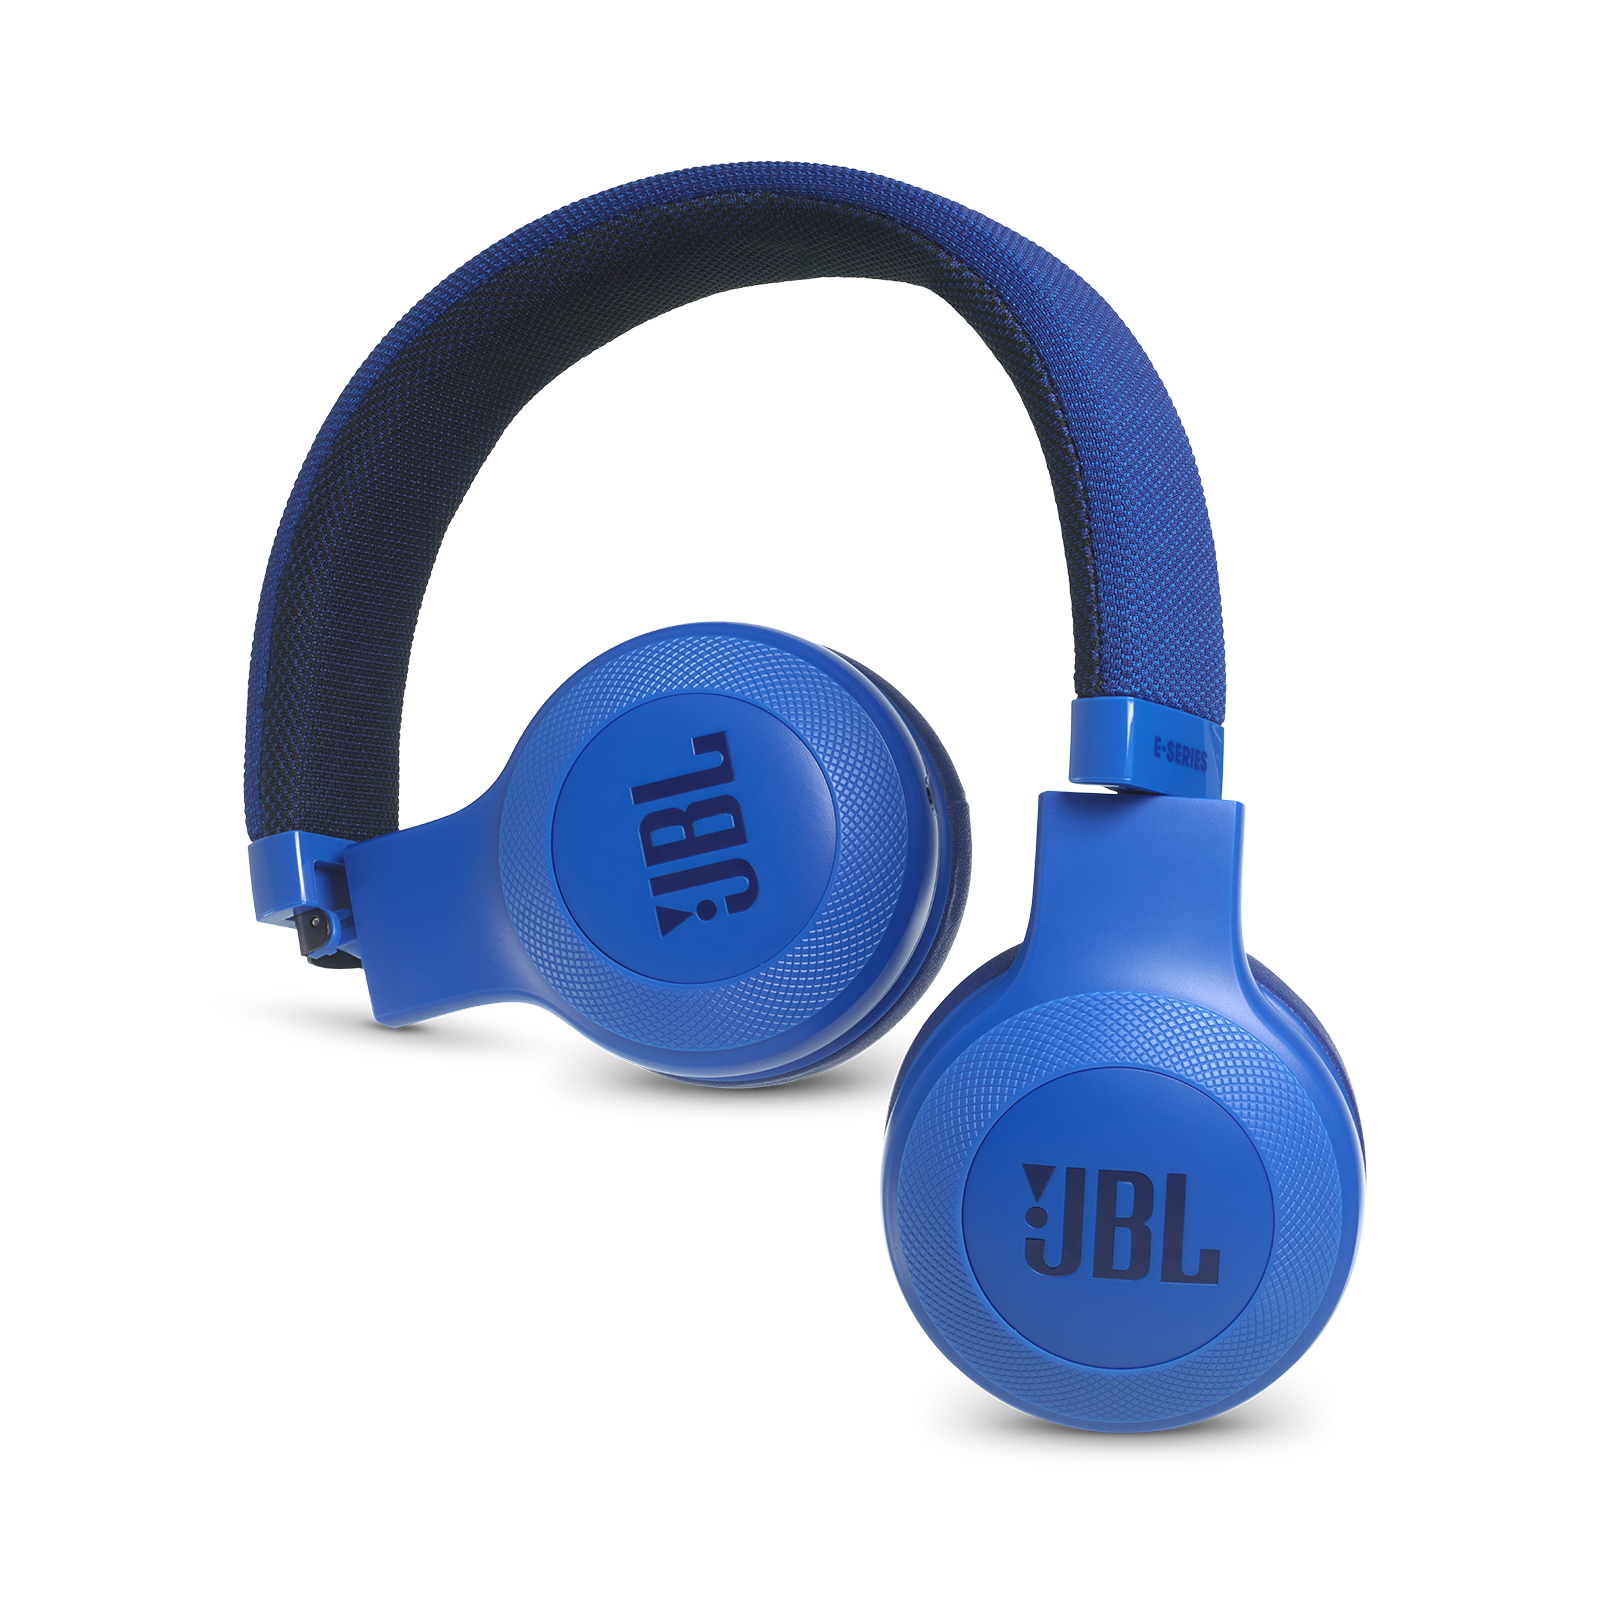 E35 - Blue - On-ear headphones - Detailshot 1